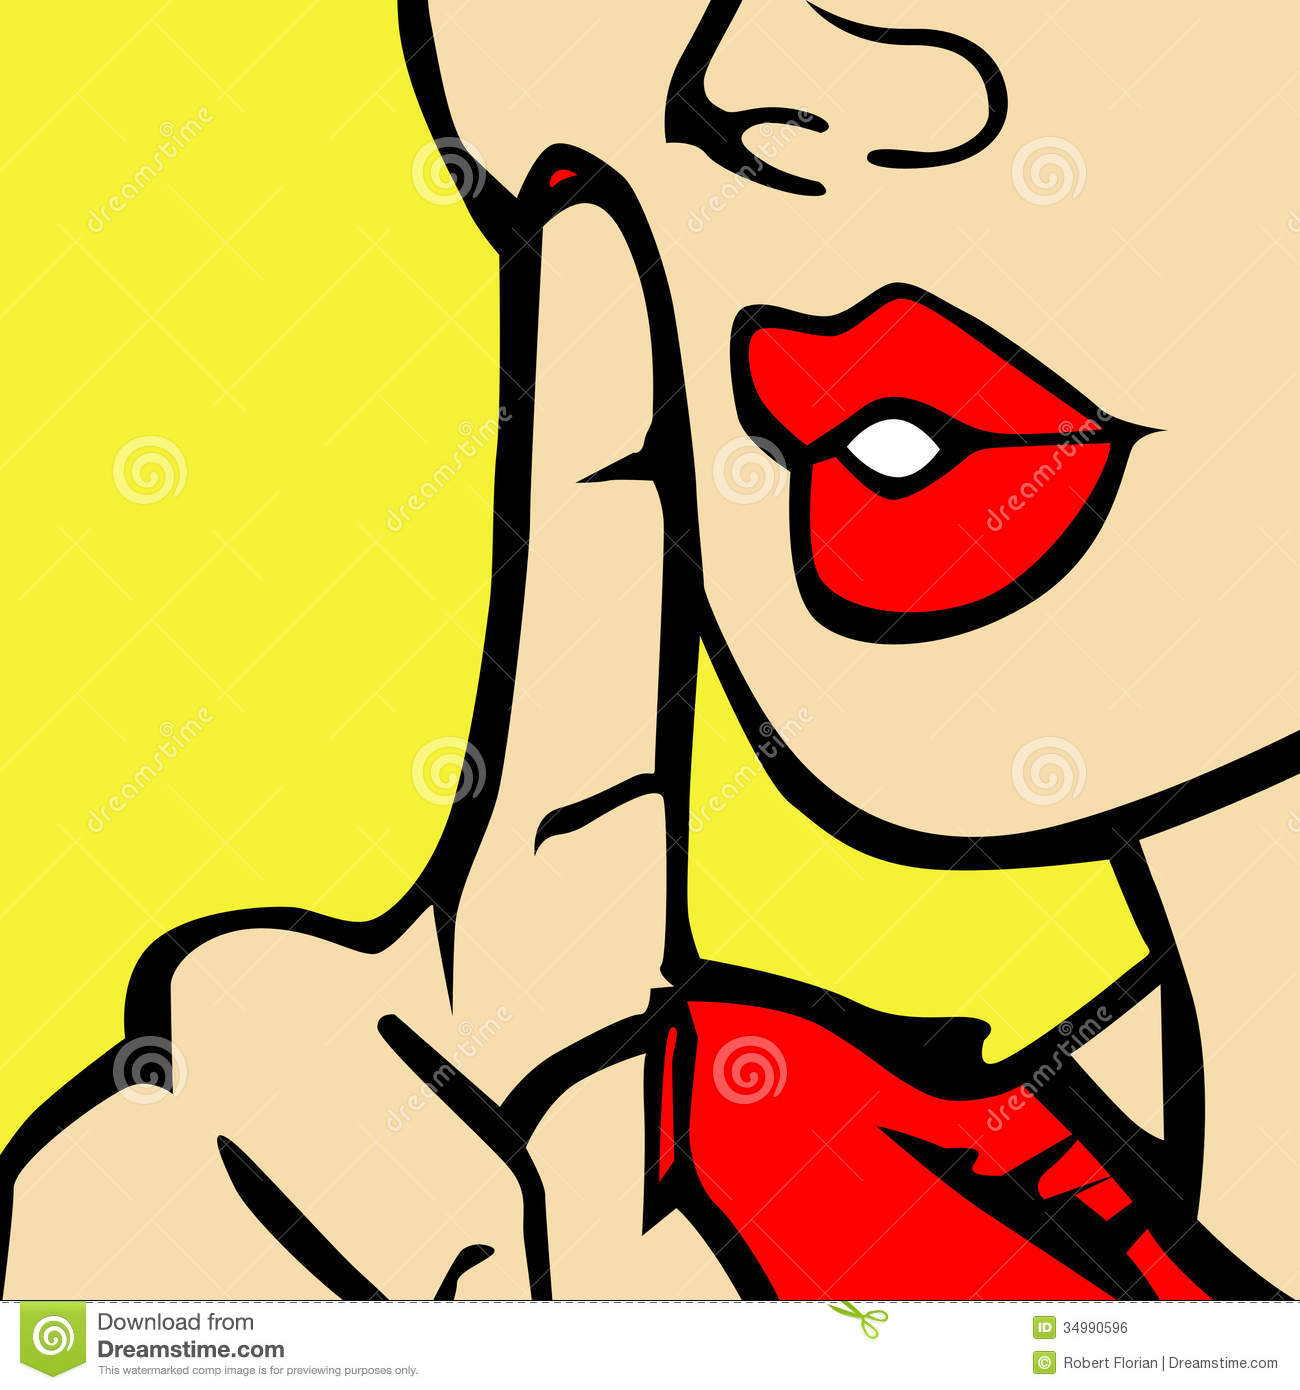 Silence Clipart Woman Asking For Silence-Silence Clipart Woman Asking For Silence-14